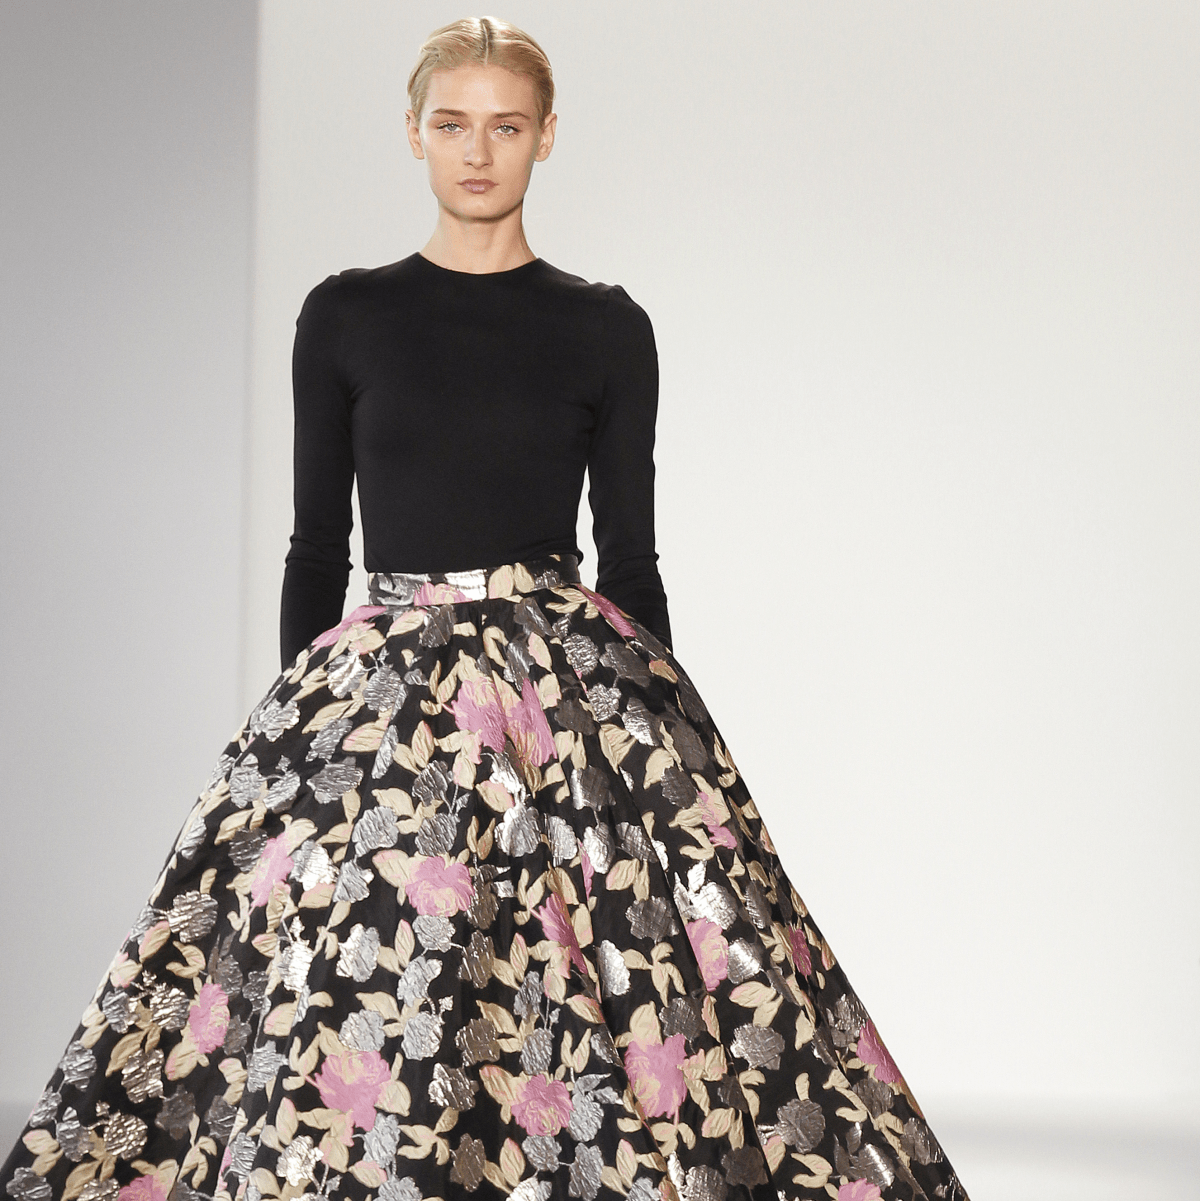 Christian Siriano look 24 spring 2018